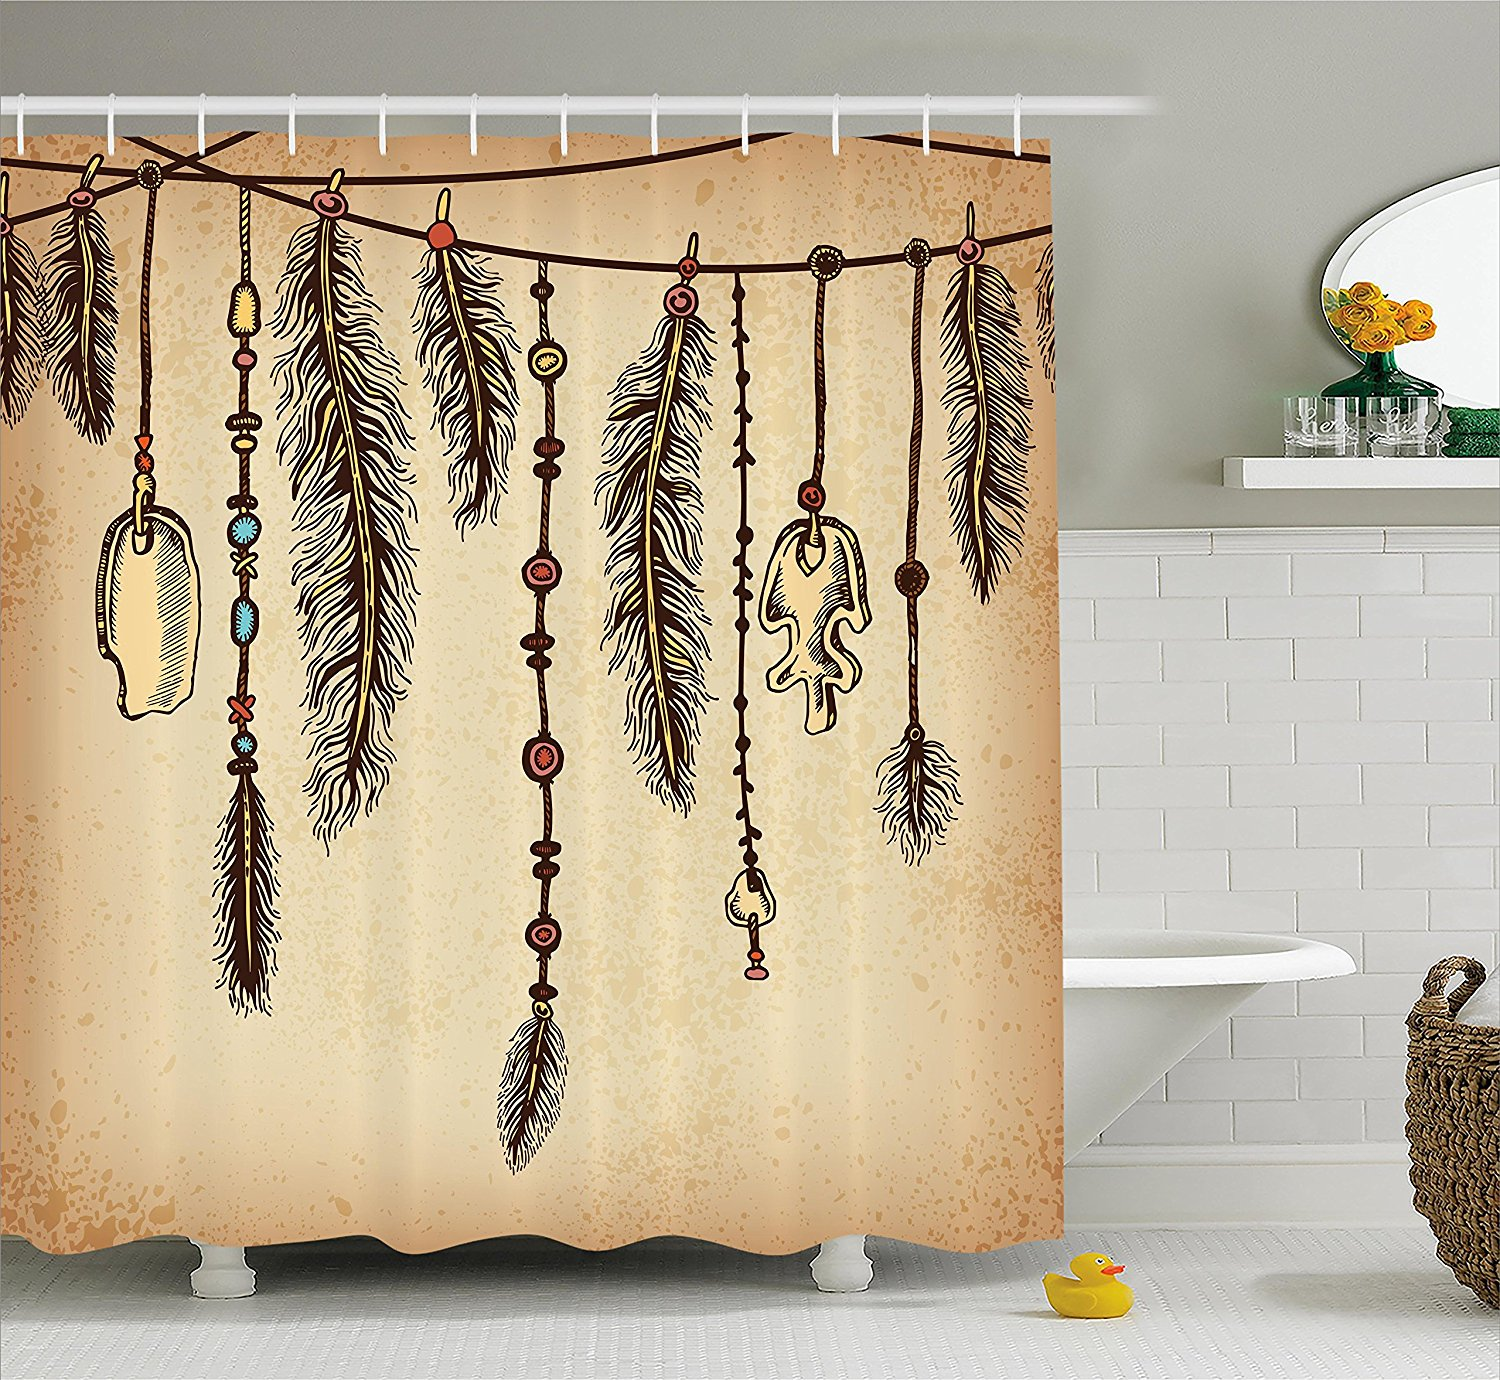 Tribal Shower Curtain Bohemian Ethnic Hair Accessories With Bird Feathers Beads On String Sketch Digital Print Bathroom Decor